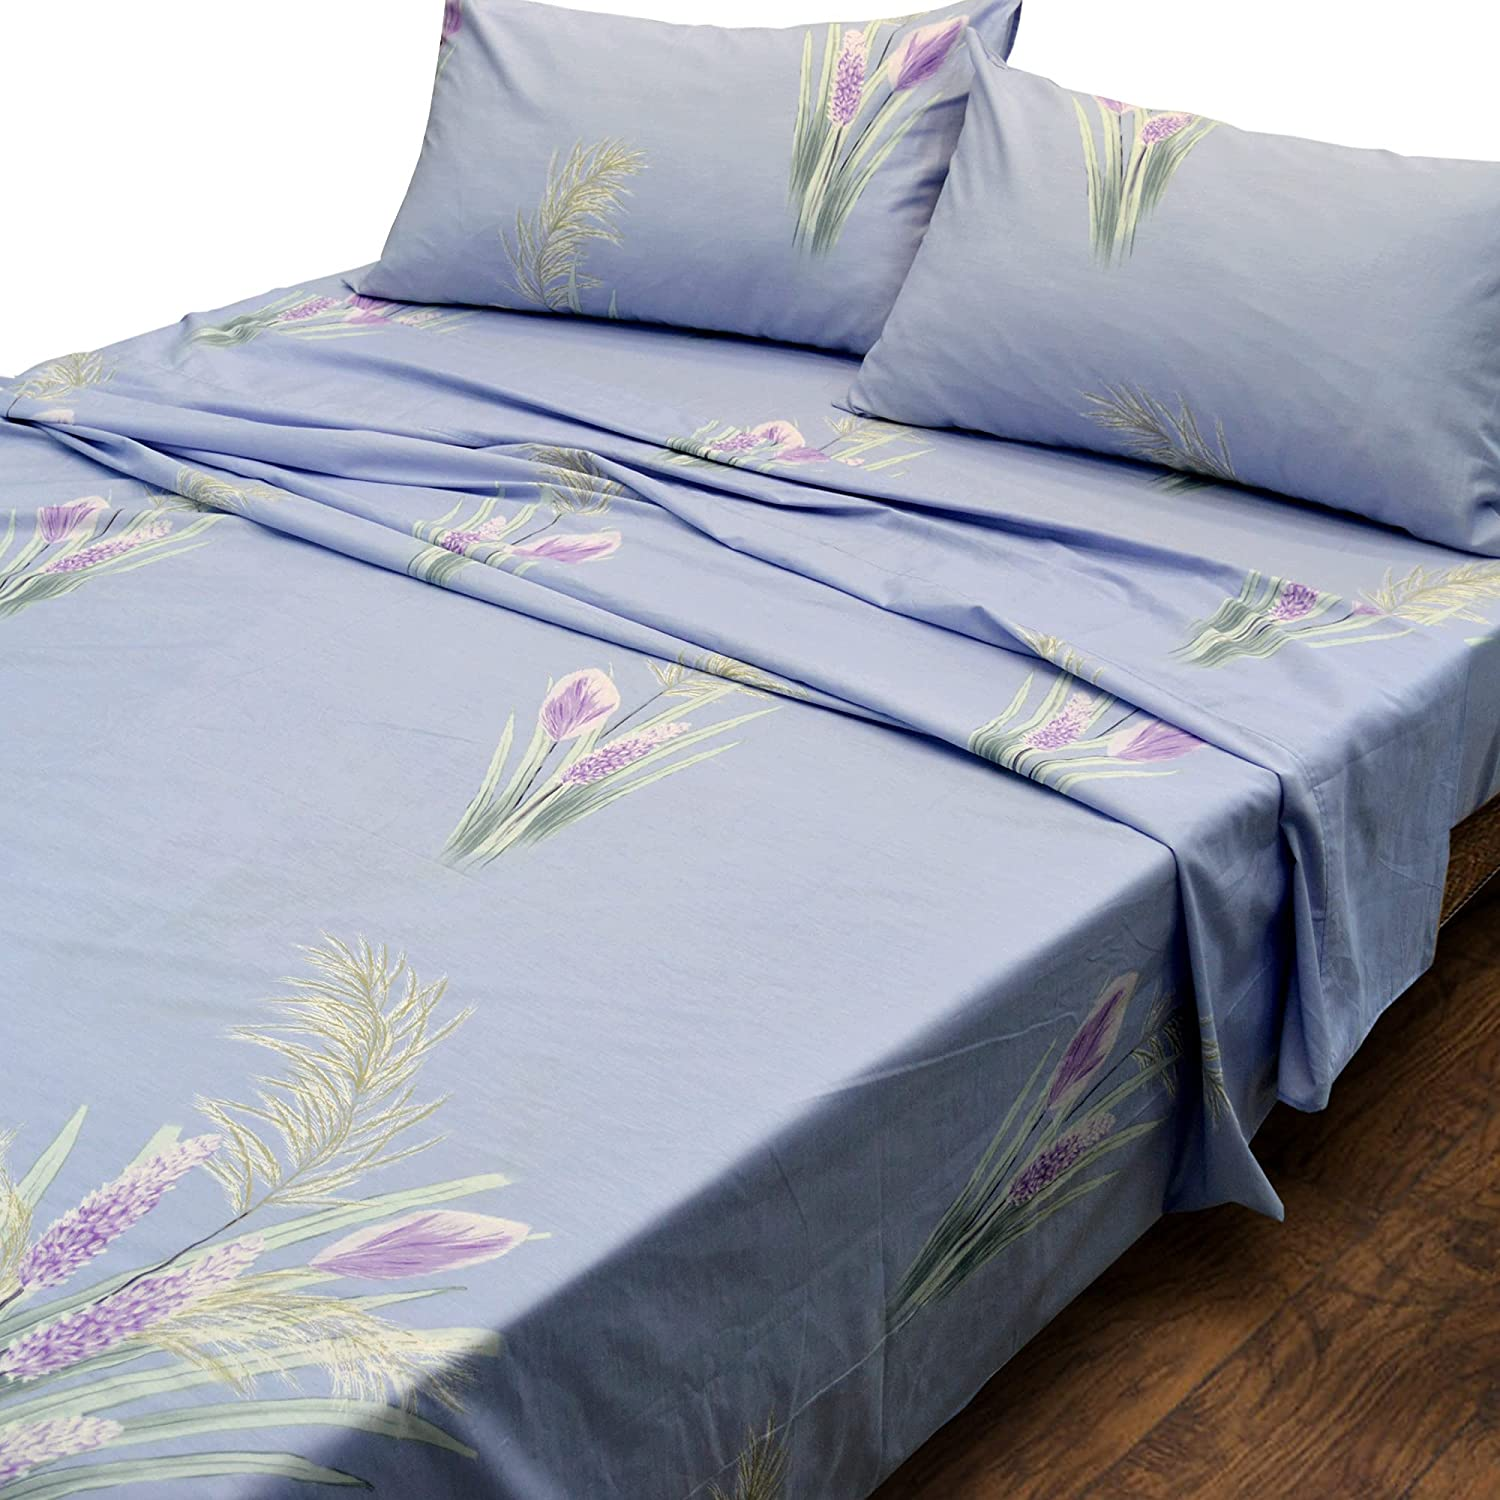 Jacksonville Mall Essina Queen Bed Sheet Set All stores are sold 4pc 620 Collection Pictorial Cotton